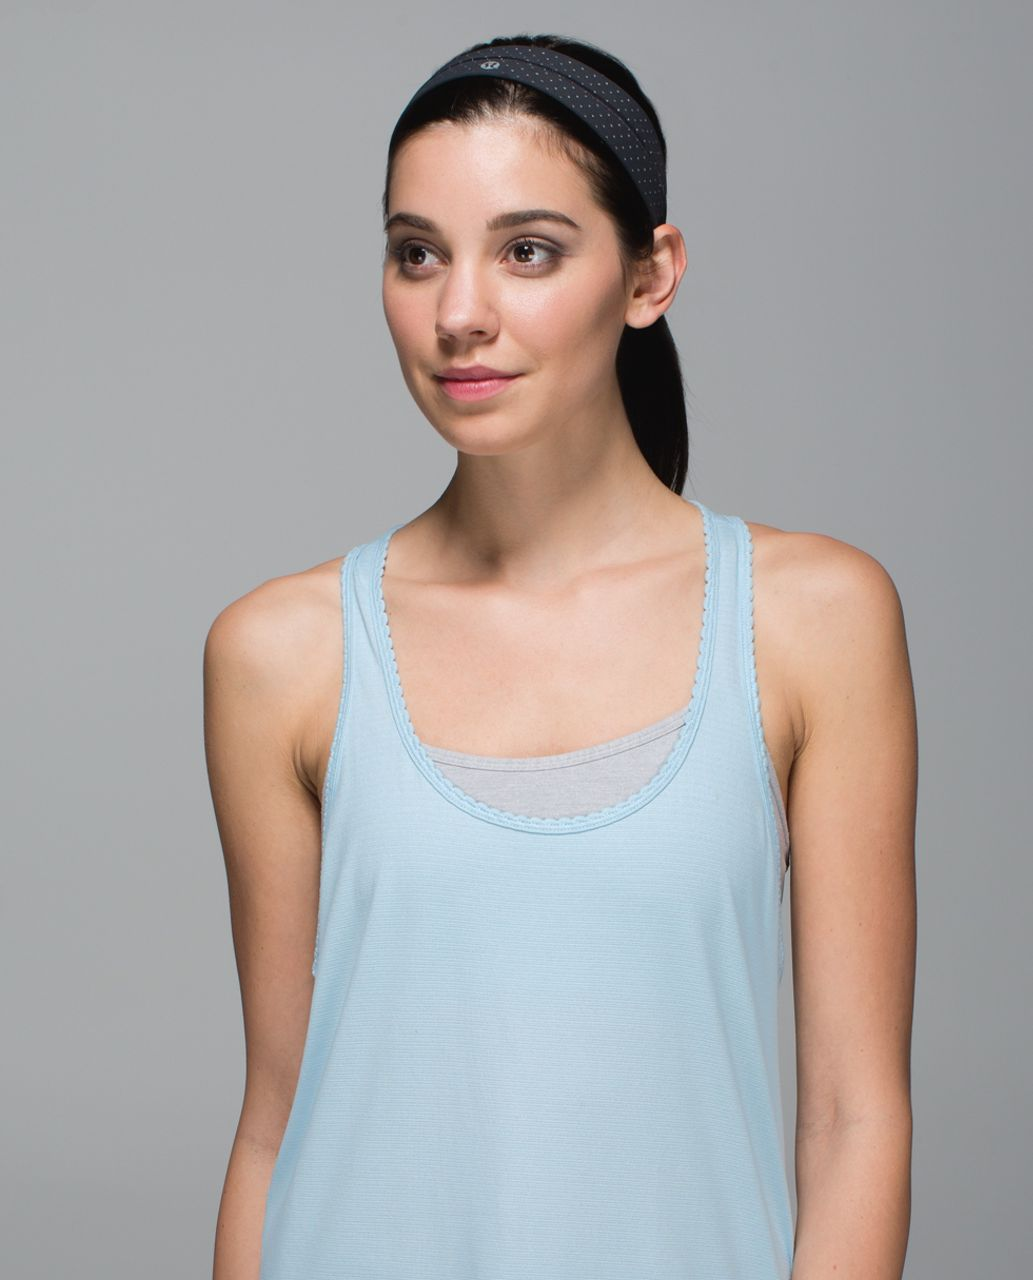 Lululemon Fly Away Tamer Headband - Teeny Dot Deep Coal Parfait Pink